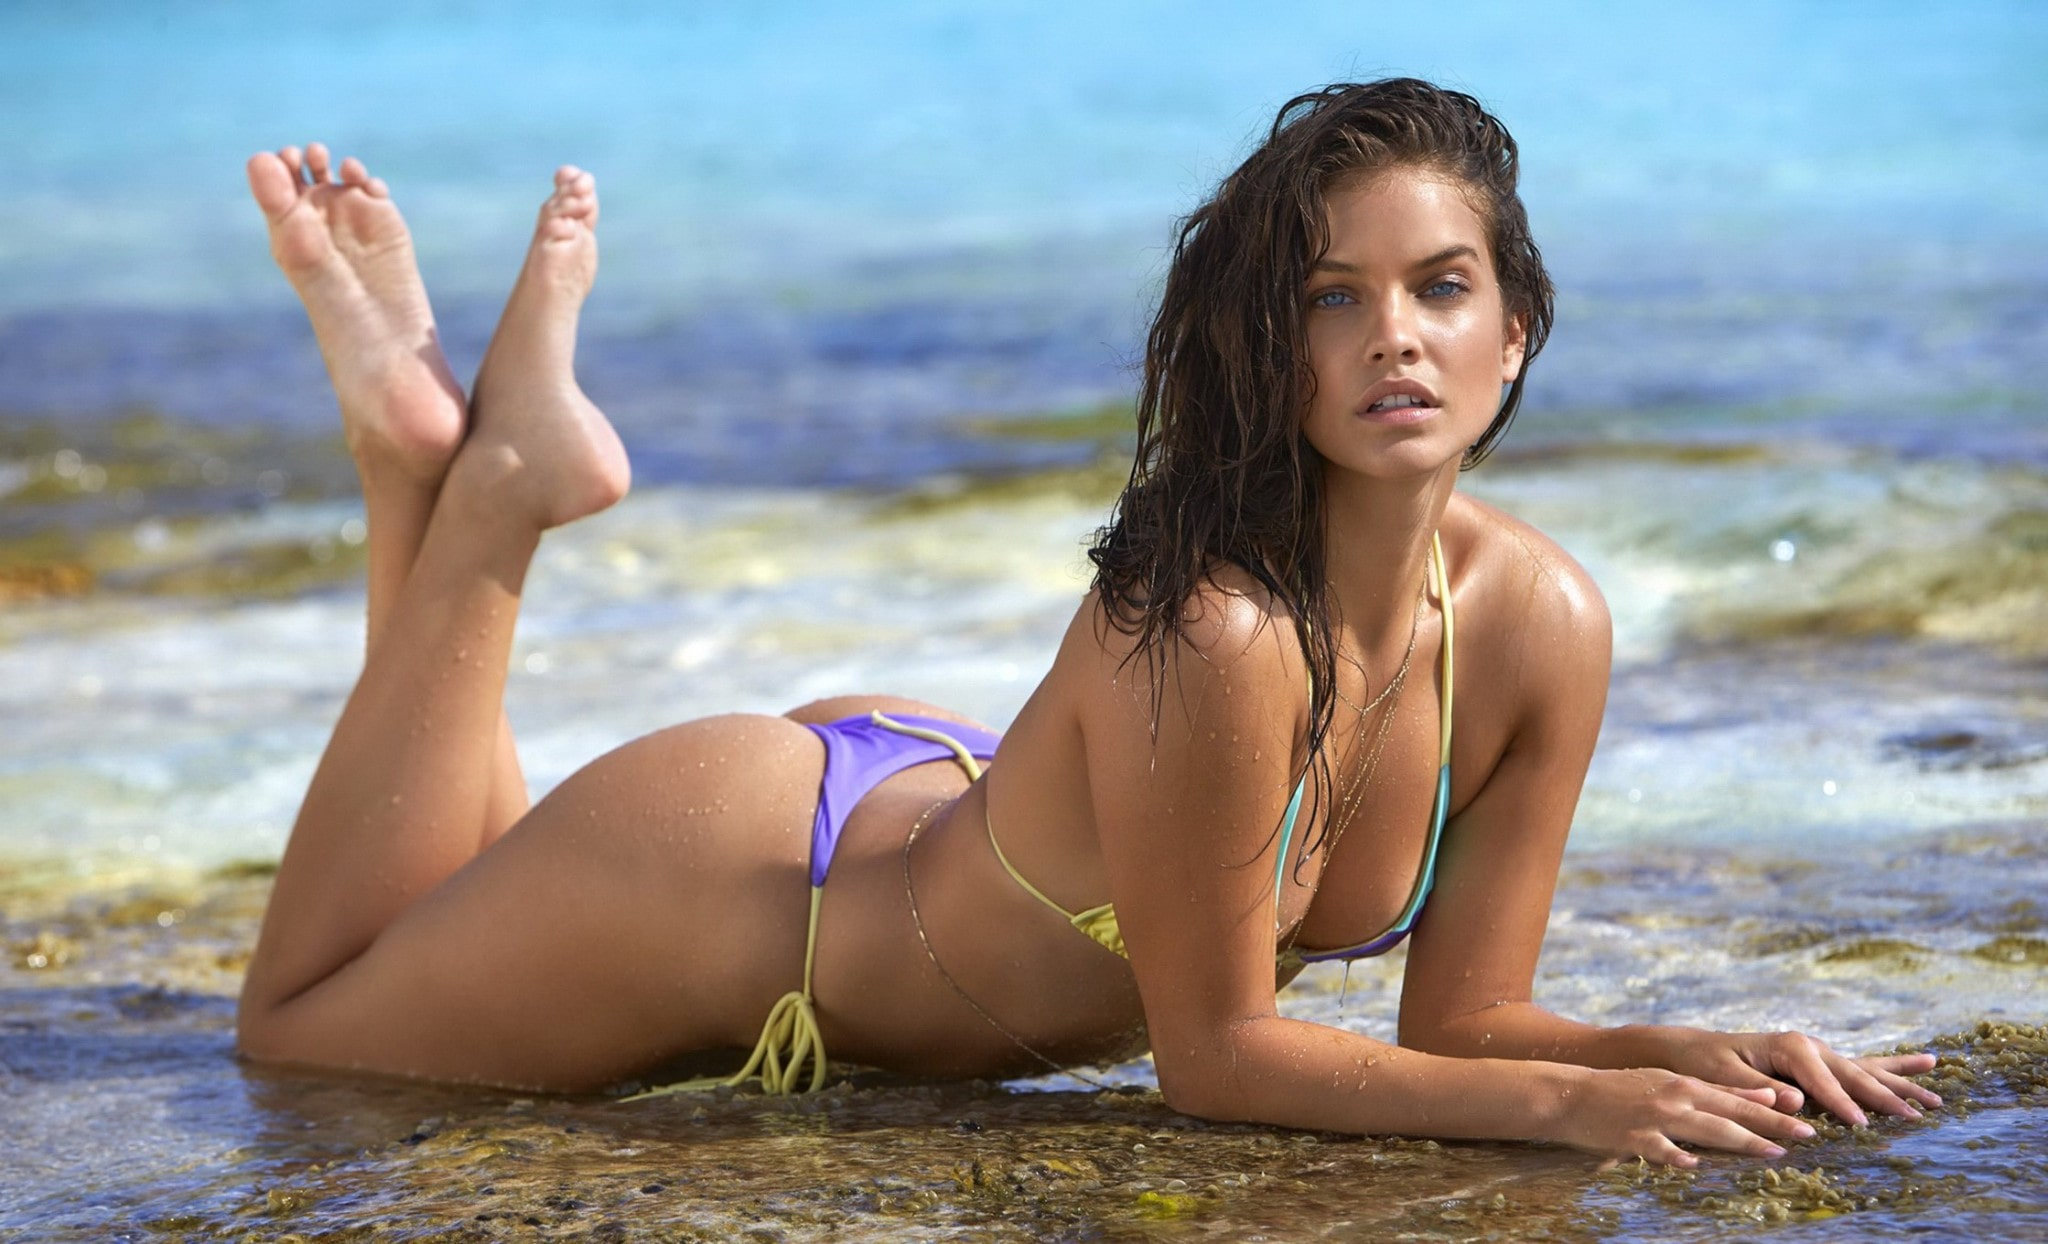 Barbara Palvin on Beach